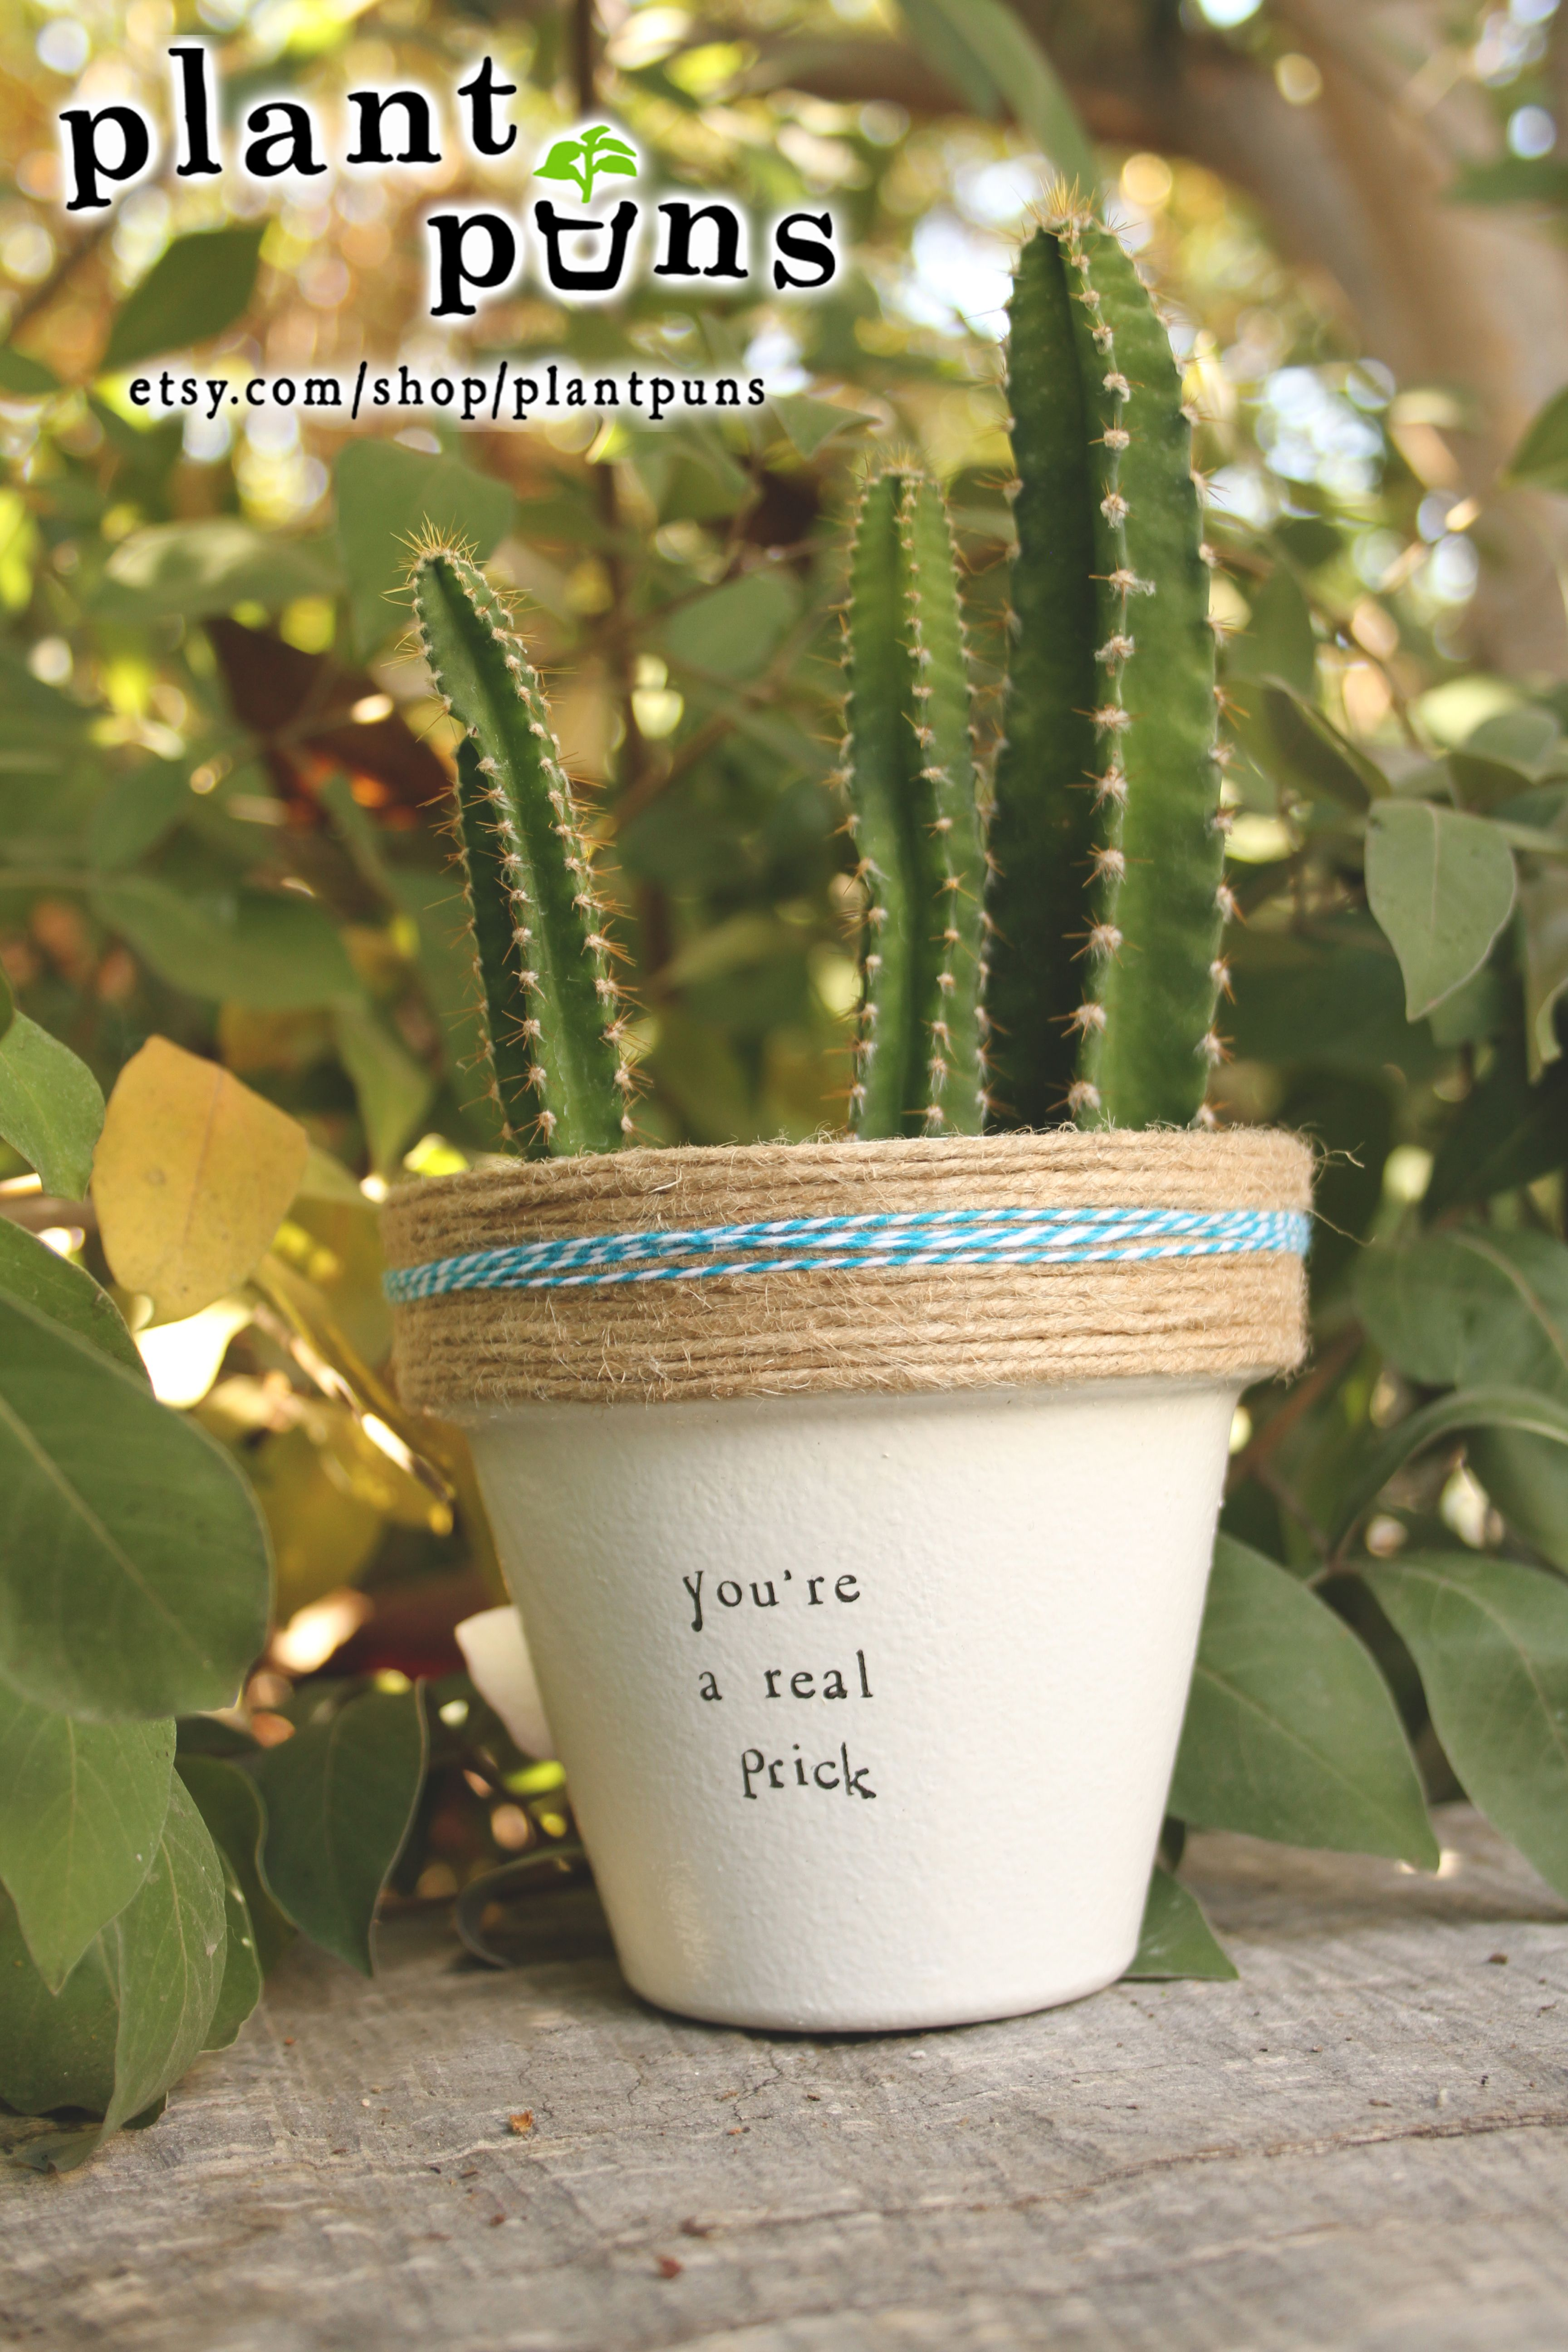 4 3 You Re A Real Terracotta Pot Perfect Mother S Day Gift Indoor Outdoor Aloe Planter Put Pun On It Www Etsy Plantpuns